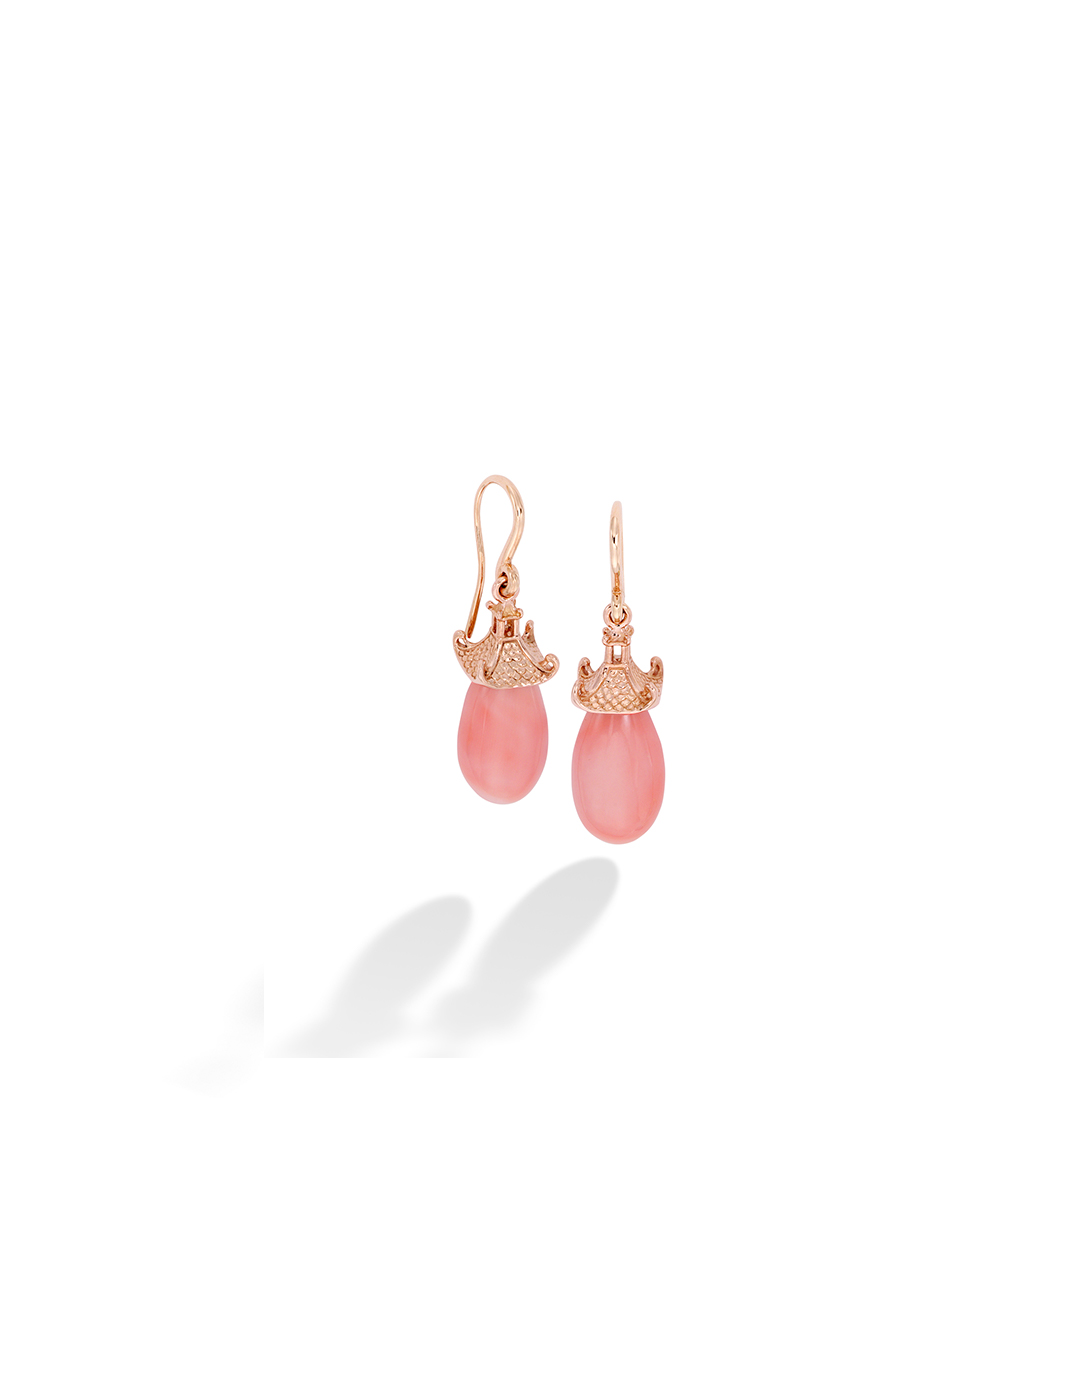 mish_products_earrings_Pagoda-PinkCoral-ER-1_resize_